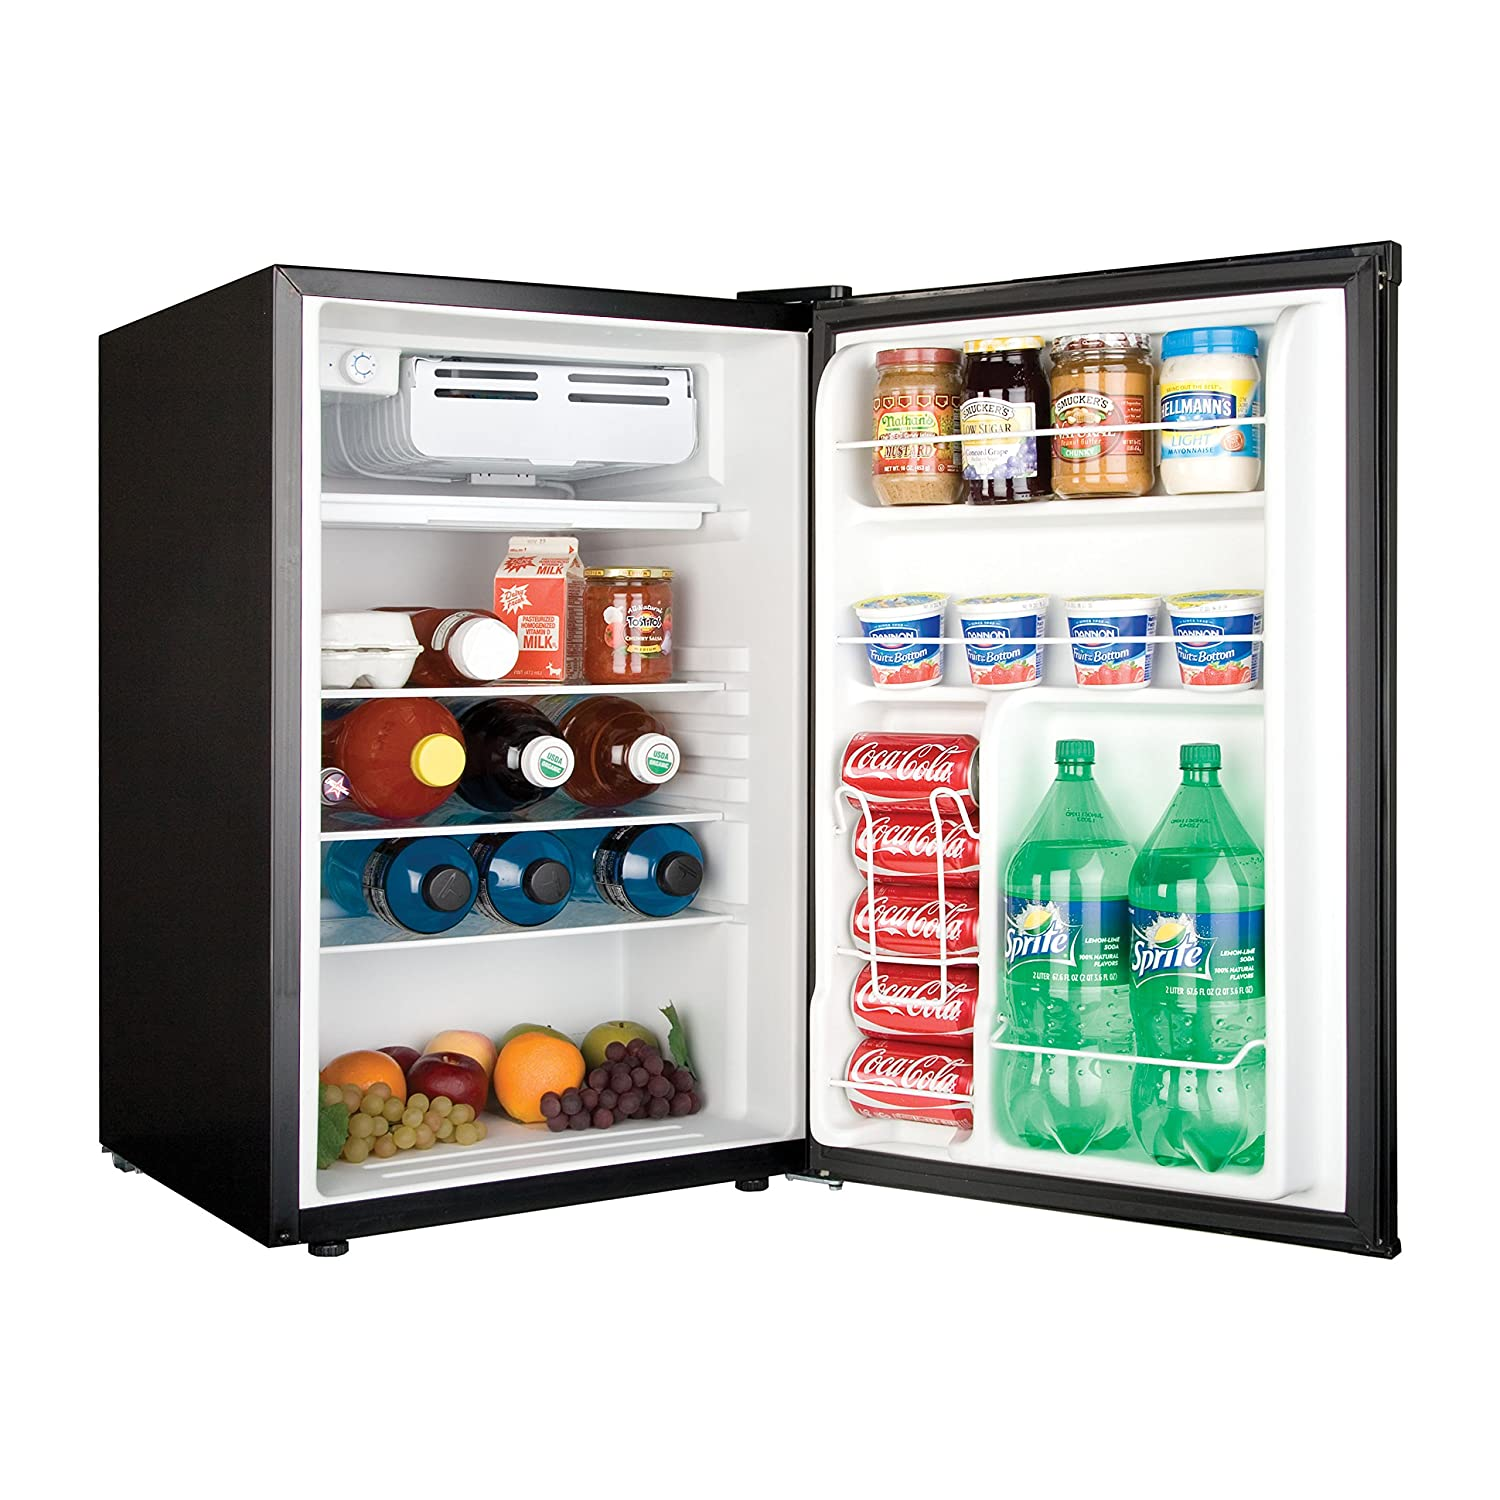 amazon com haier hc46sf10sv compact refrigerator small stainless rh amazon com haier mini fridge service manual haier mini fridge service manual